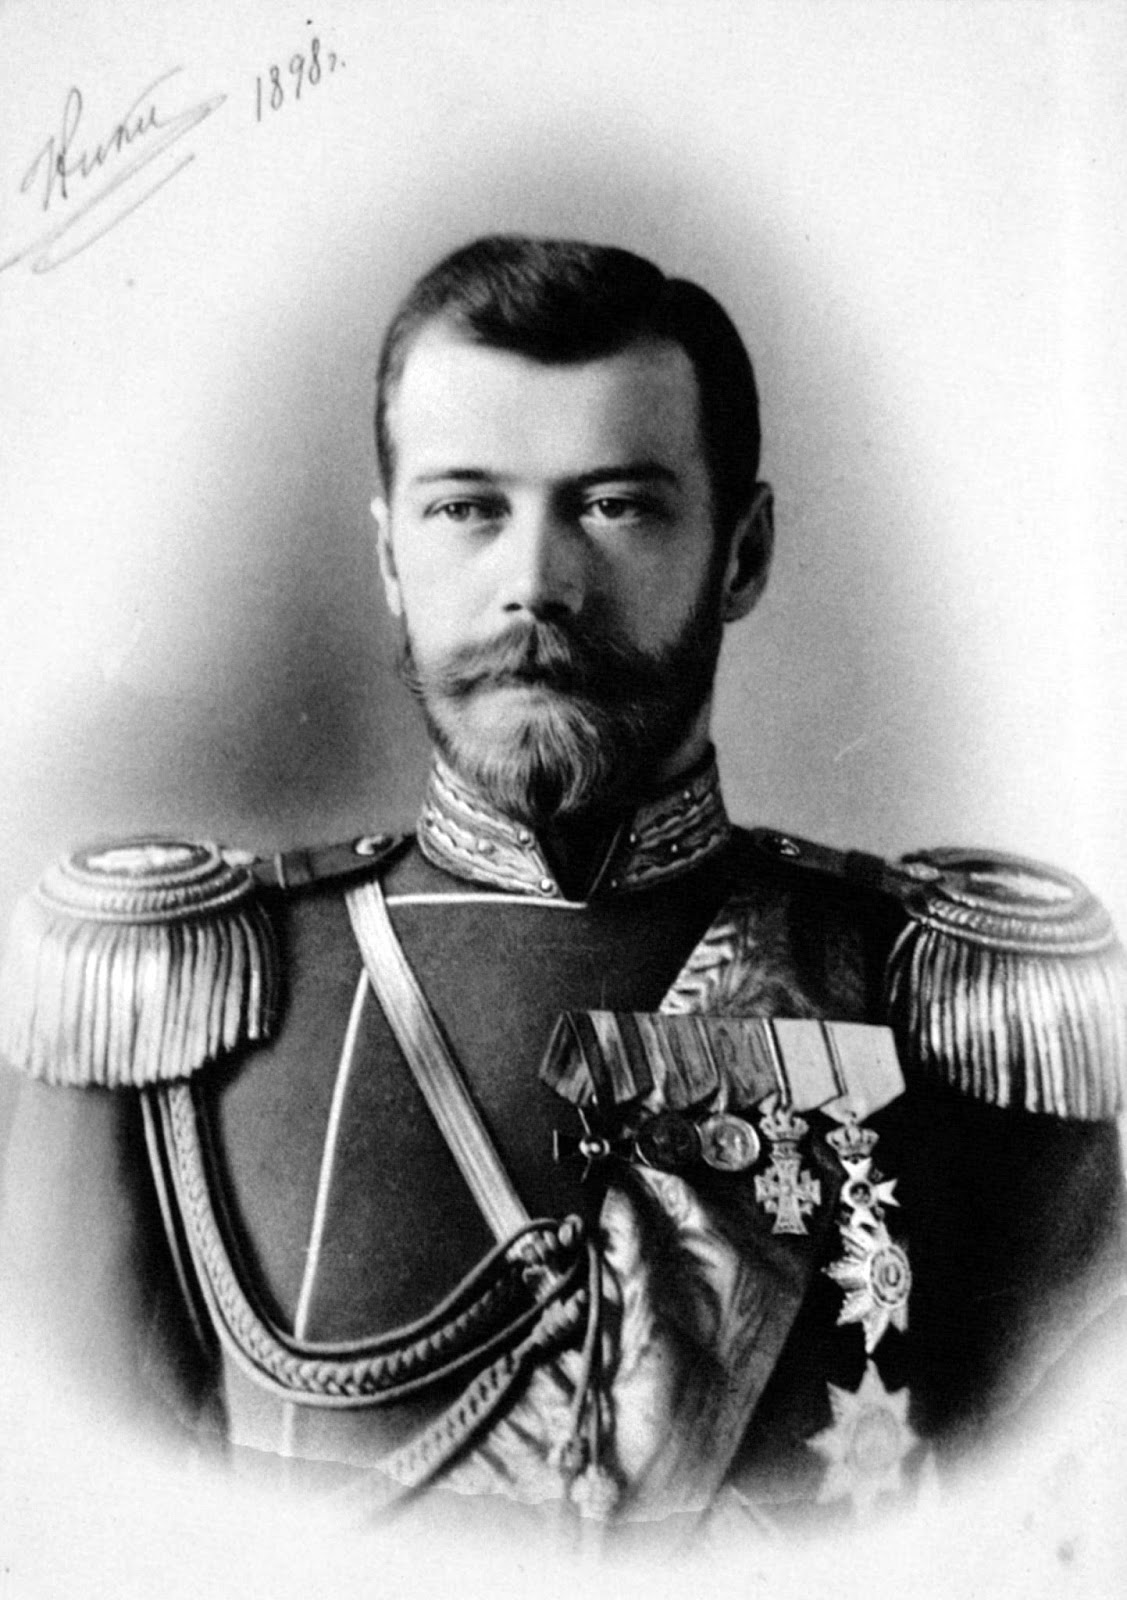 Nicolas Ii All About Royal Families Otd March 15th 1917 Abdication Of Tsar